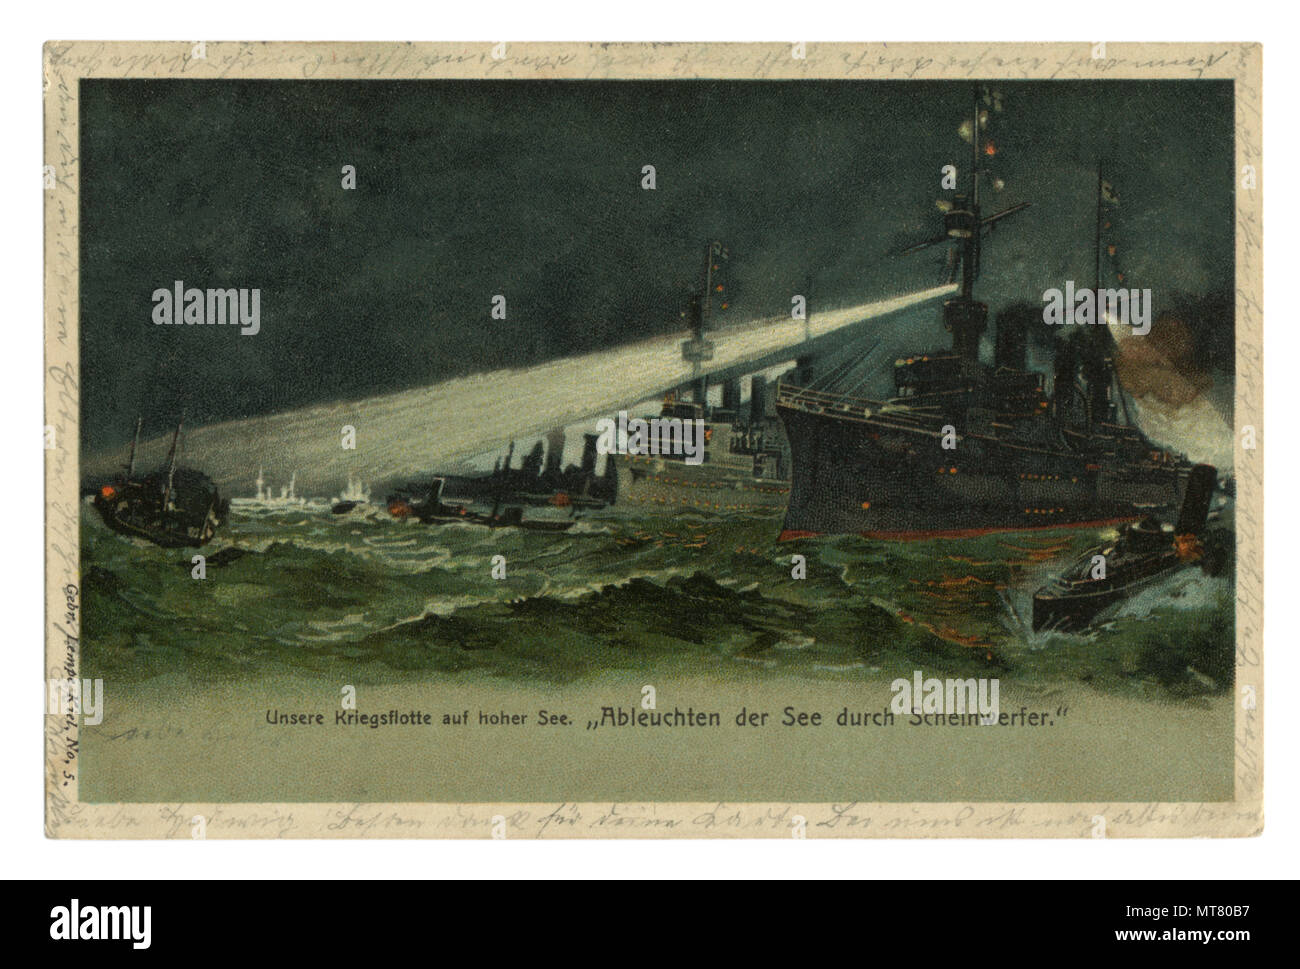 German historical postcard: The Navy lights its way with spotlights in the stormy sea, on a dark night. world war one 1914-1918. Germany. Stock Photo